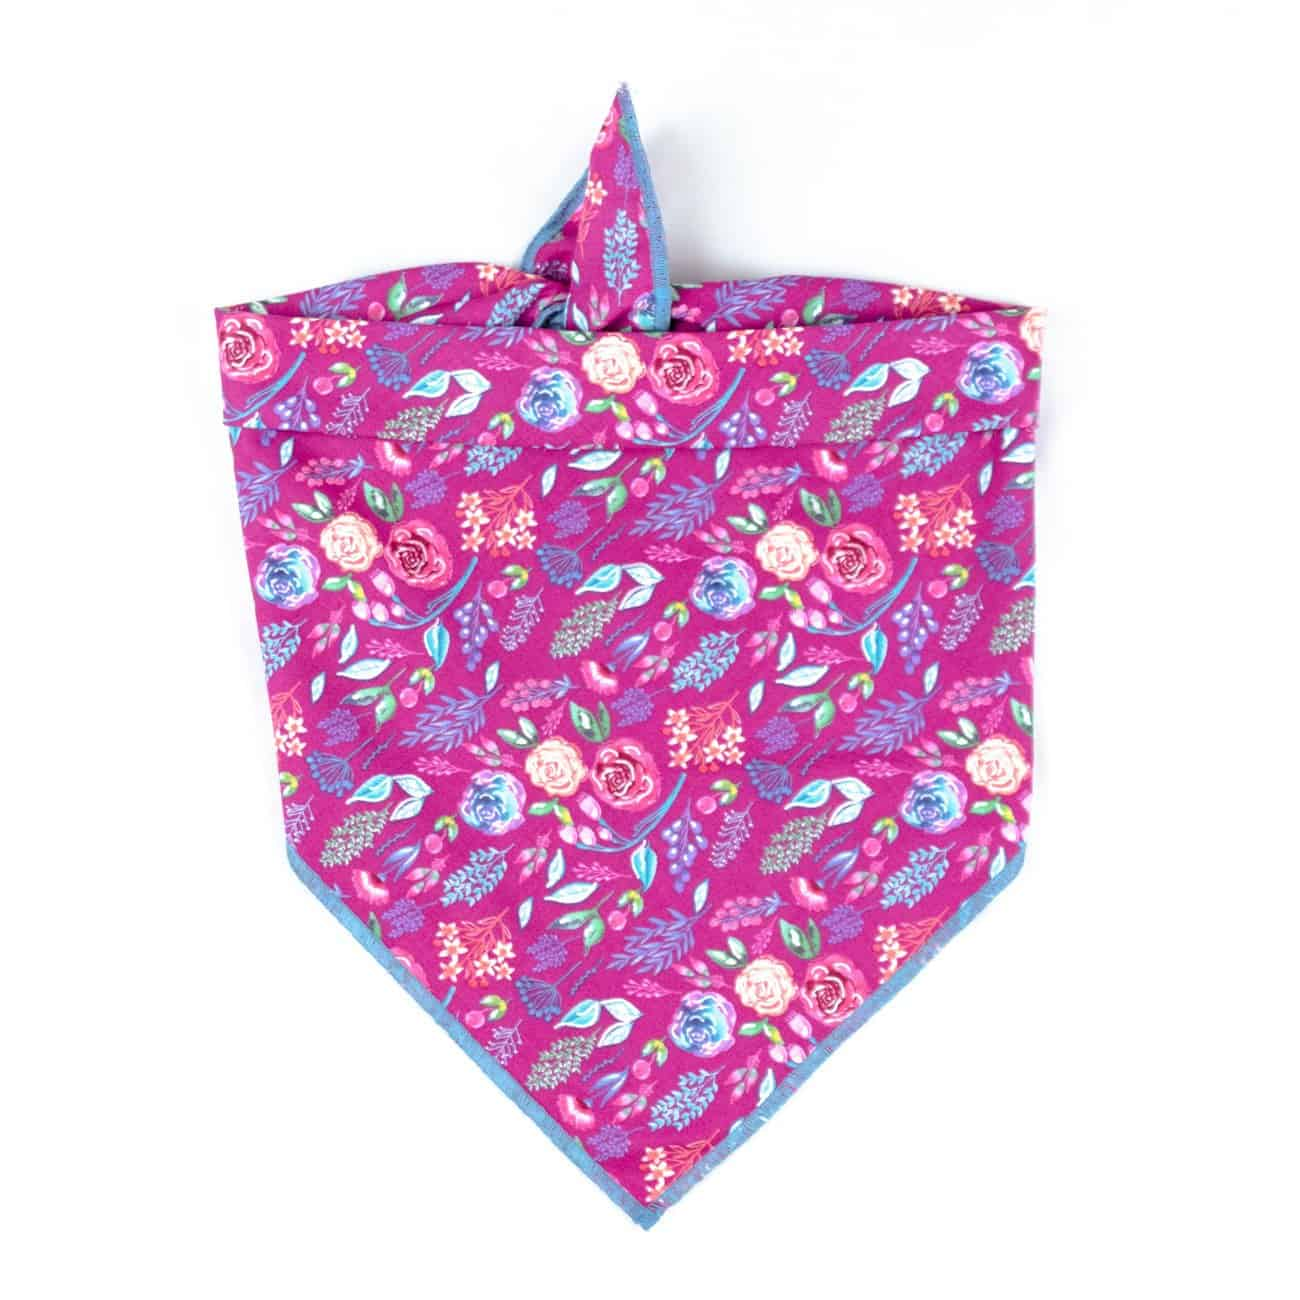 Wine colored floral bandana